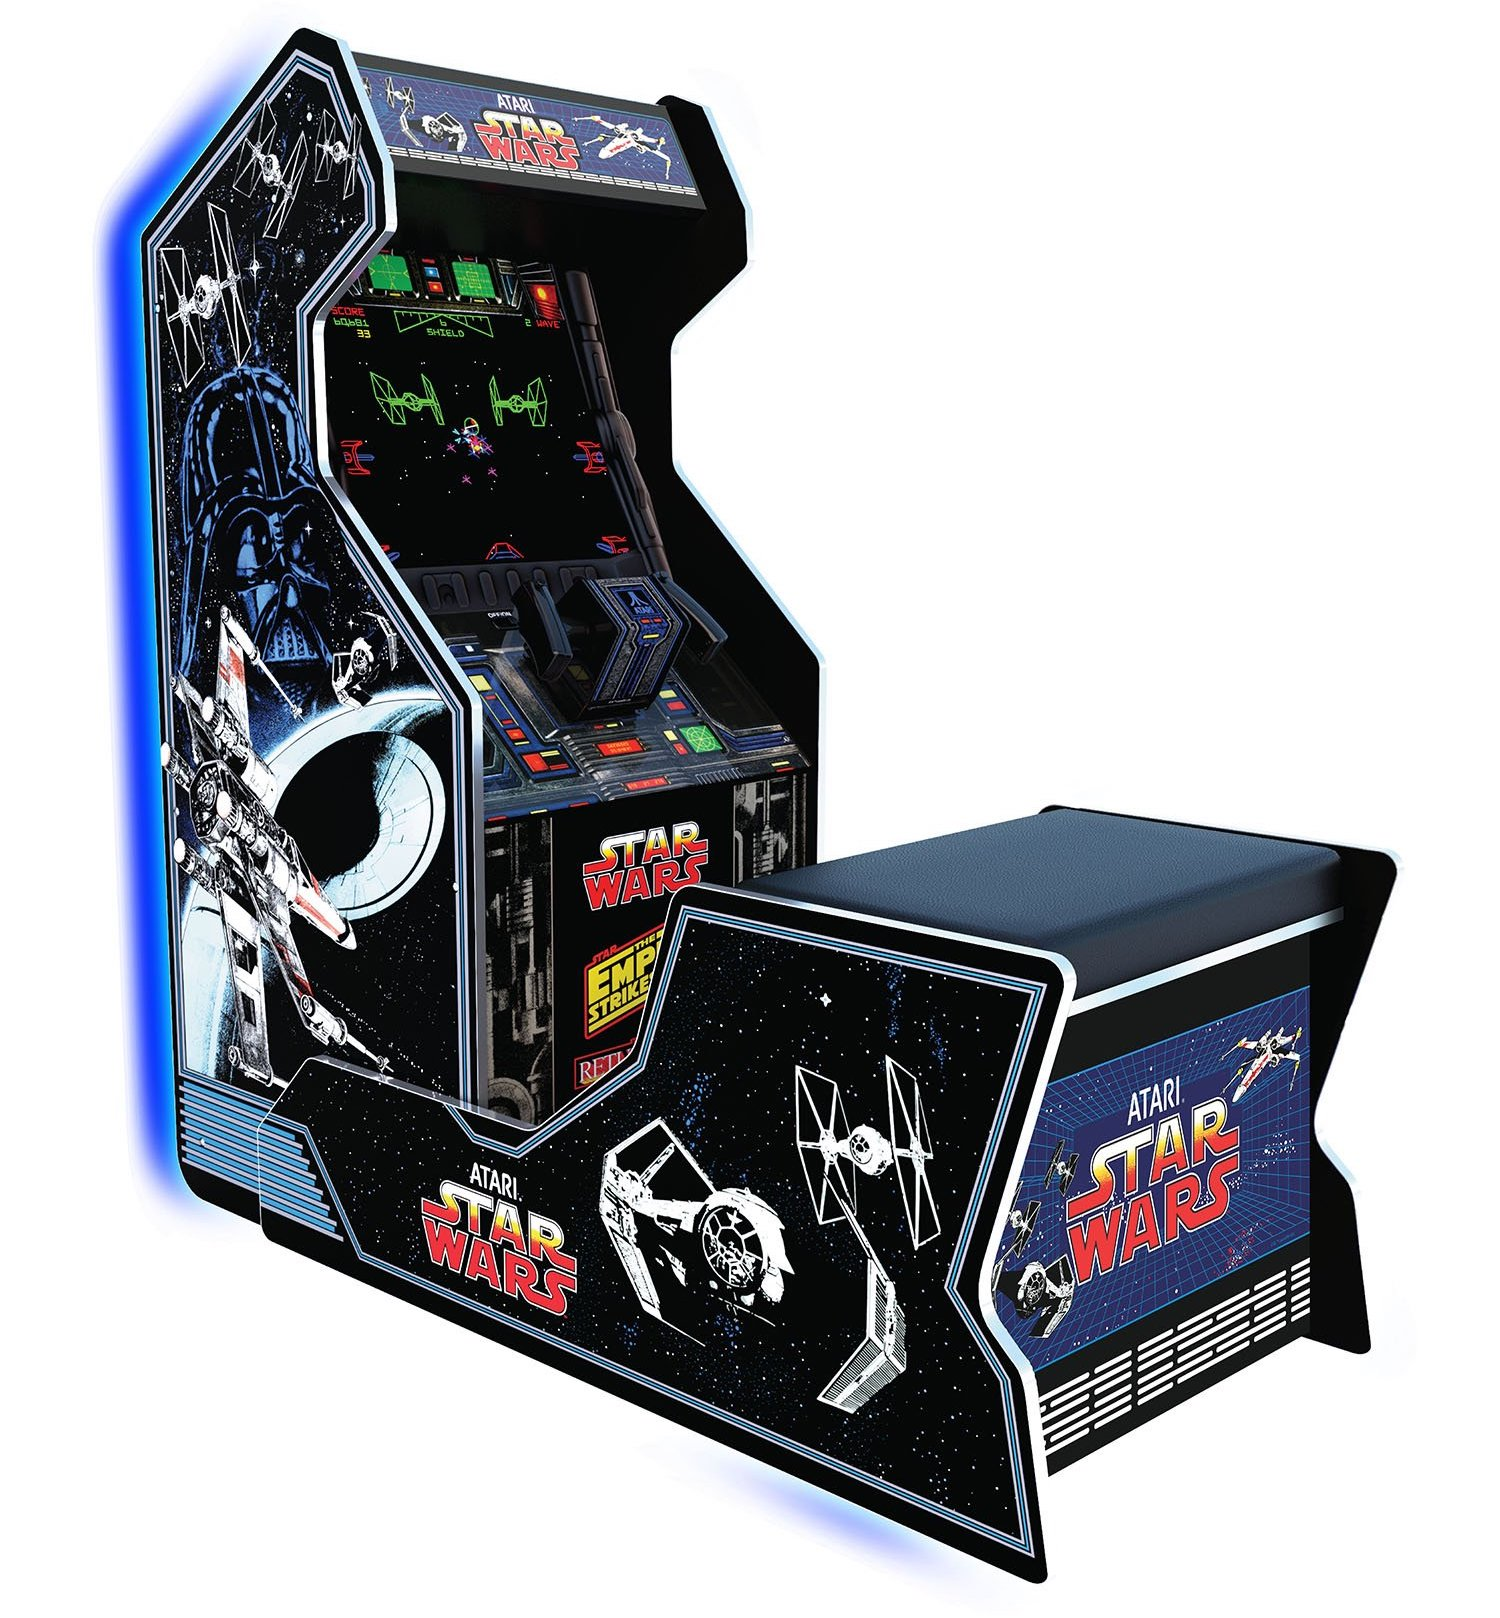 Best Star Wars arcade machine now on sale